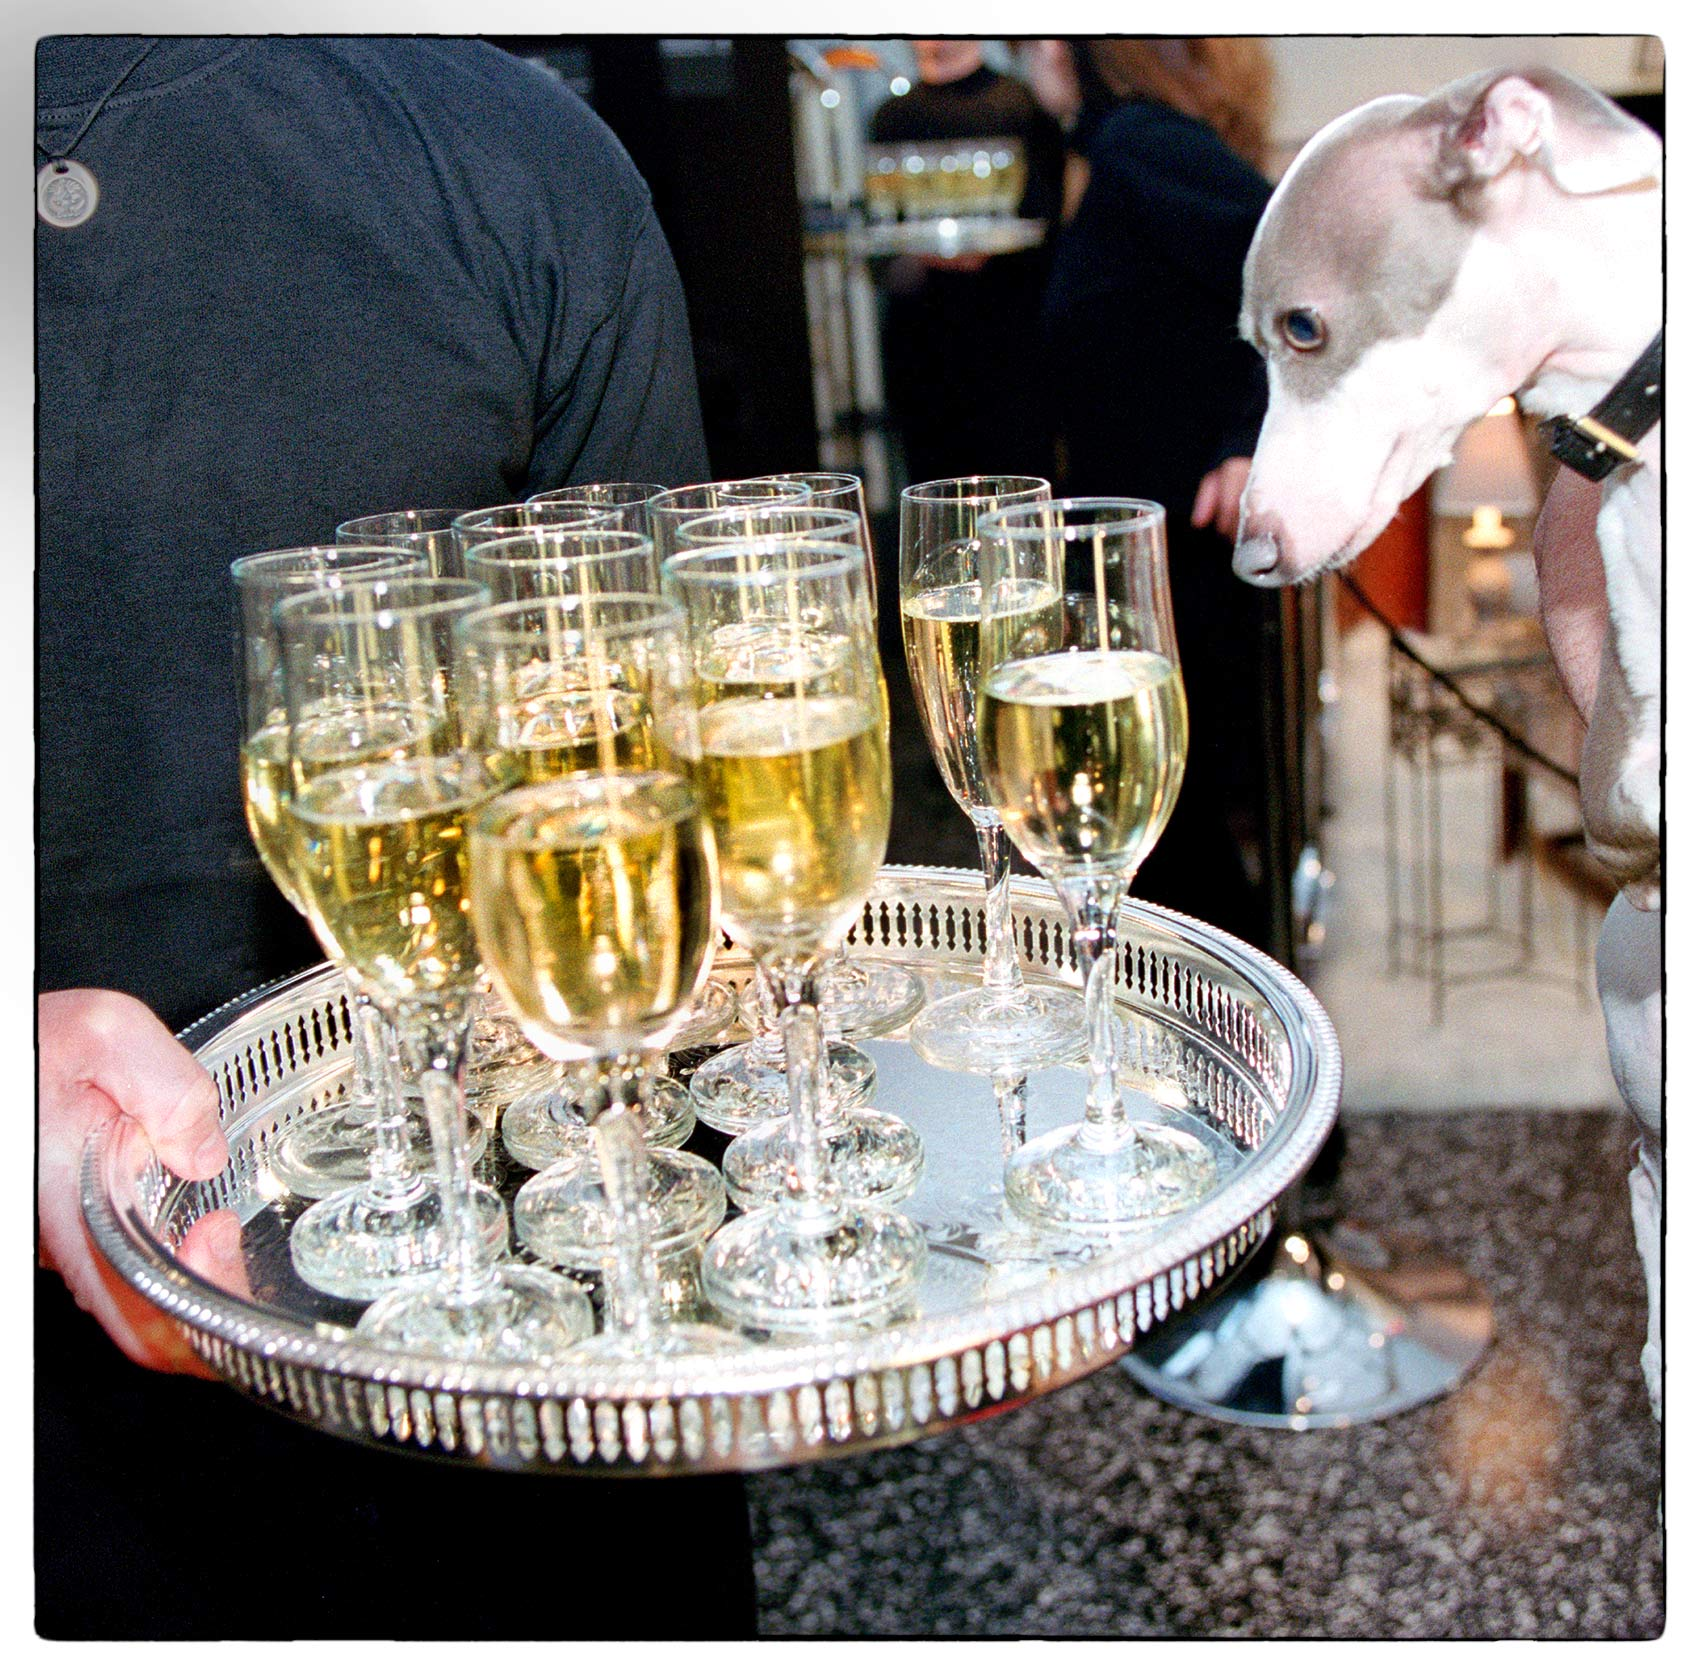 a-dog-stares-at-a-tray-of-champagne-glasses-during-a-party-at-much-music-tv-in-toronto